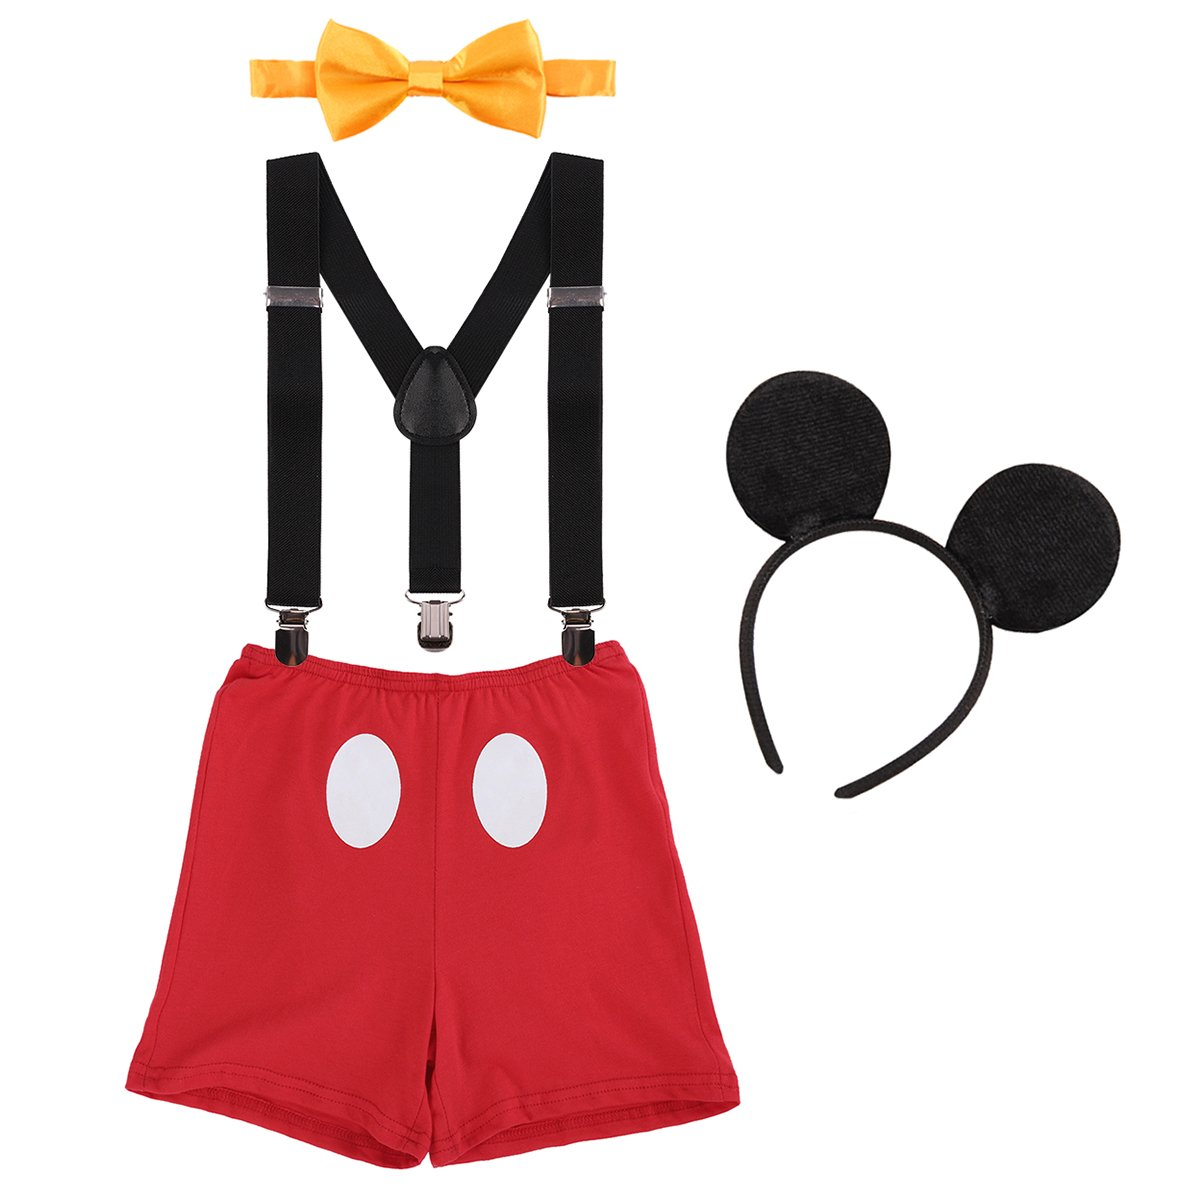 Cake Smash Outfit Baby Boys 1st/2nd/3rd Birthday Party Costume Newborn Infant Toddler Bloomers Shorts Pants + Adjustable Y Back Suspenders Braces + Bow Tie + Mouse Ears Headband Kids Photo Shoot